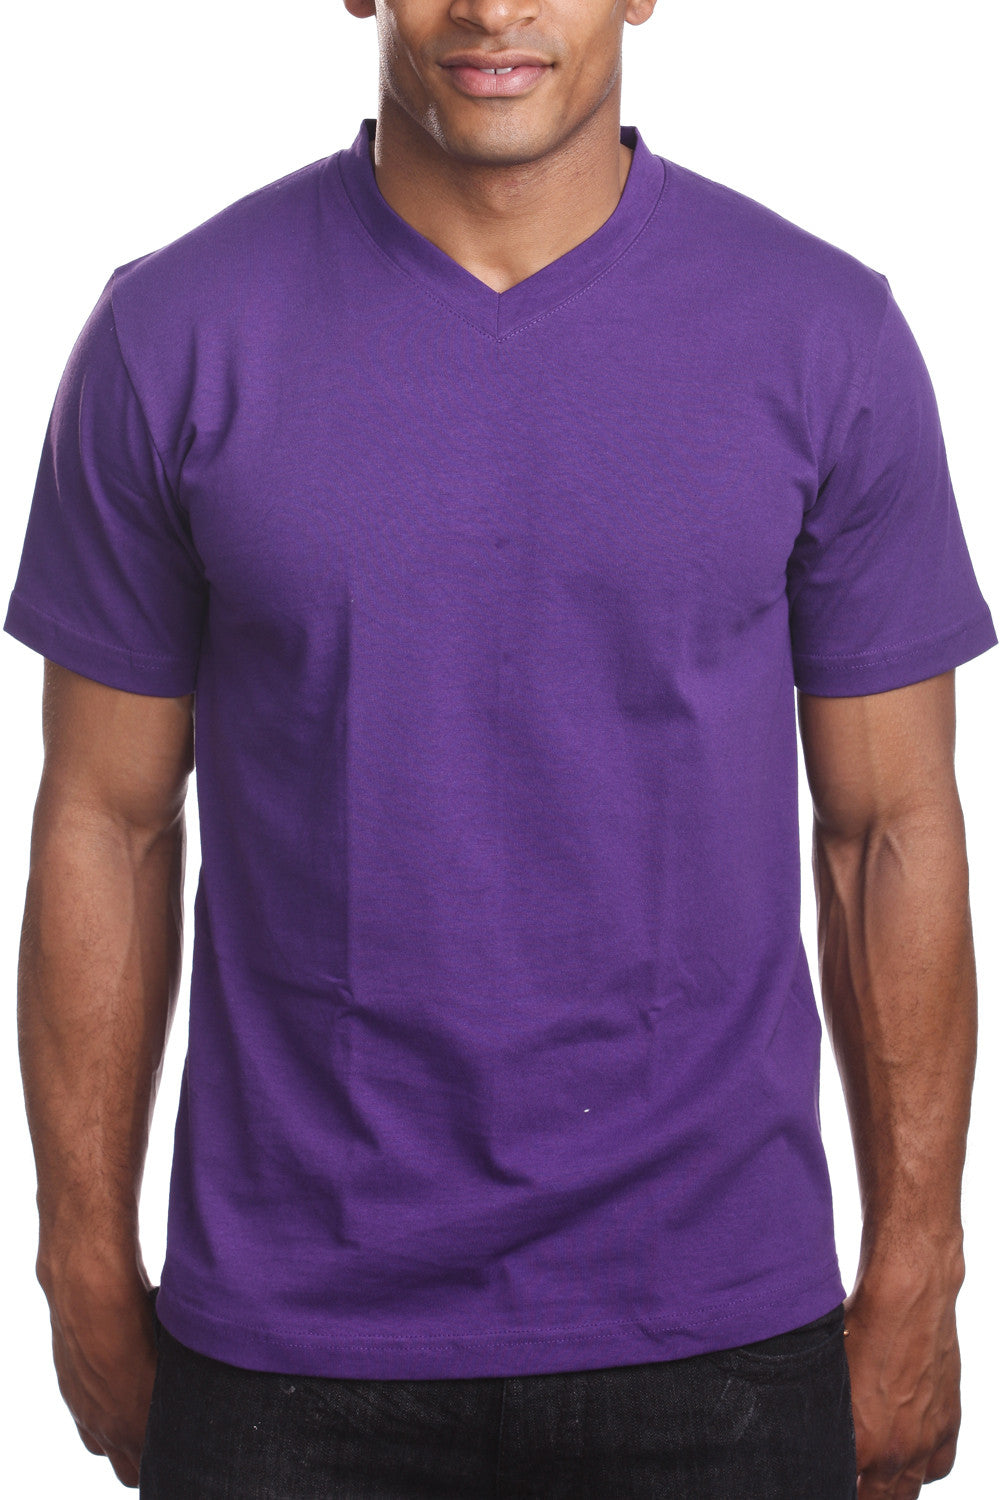 Shop the Latest Collection of Purple V-Neck T-Shirts for Men Online at gehedoruqigimate.ml FREE SHIPPING AVAILABLE!